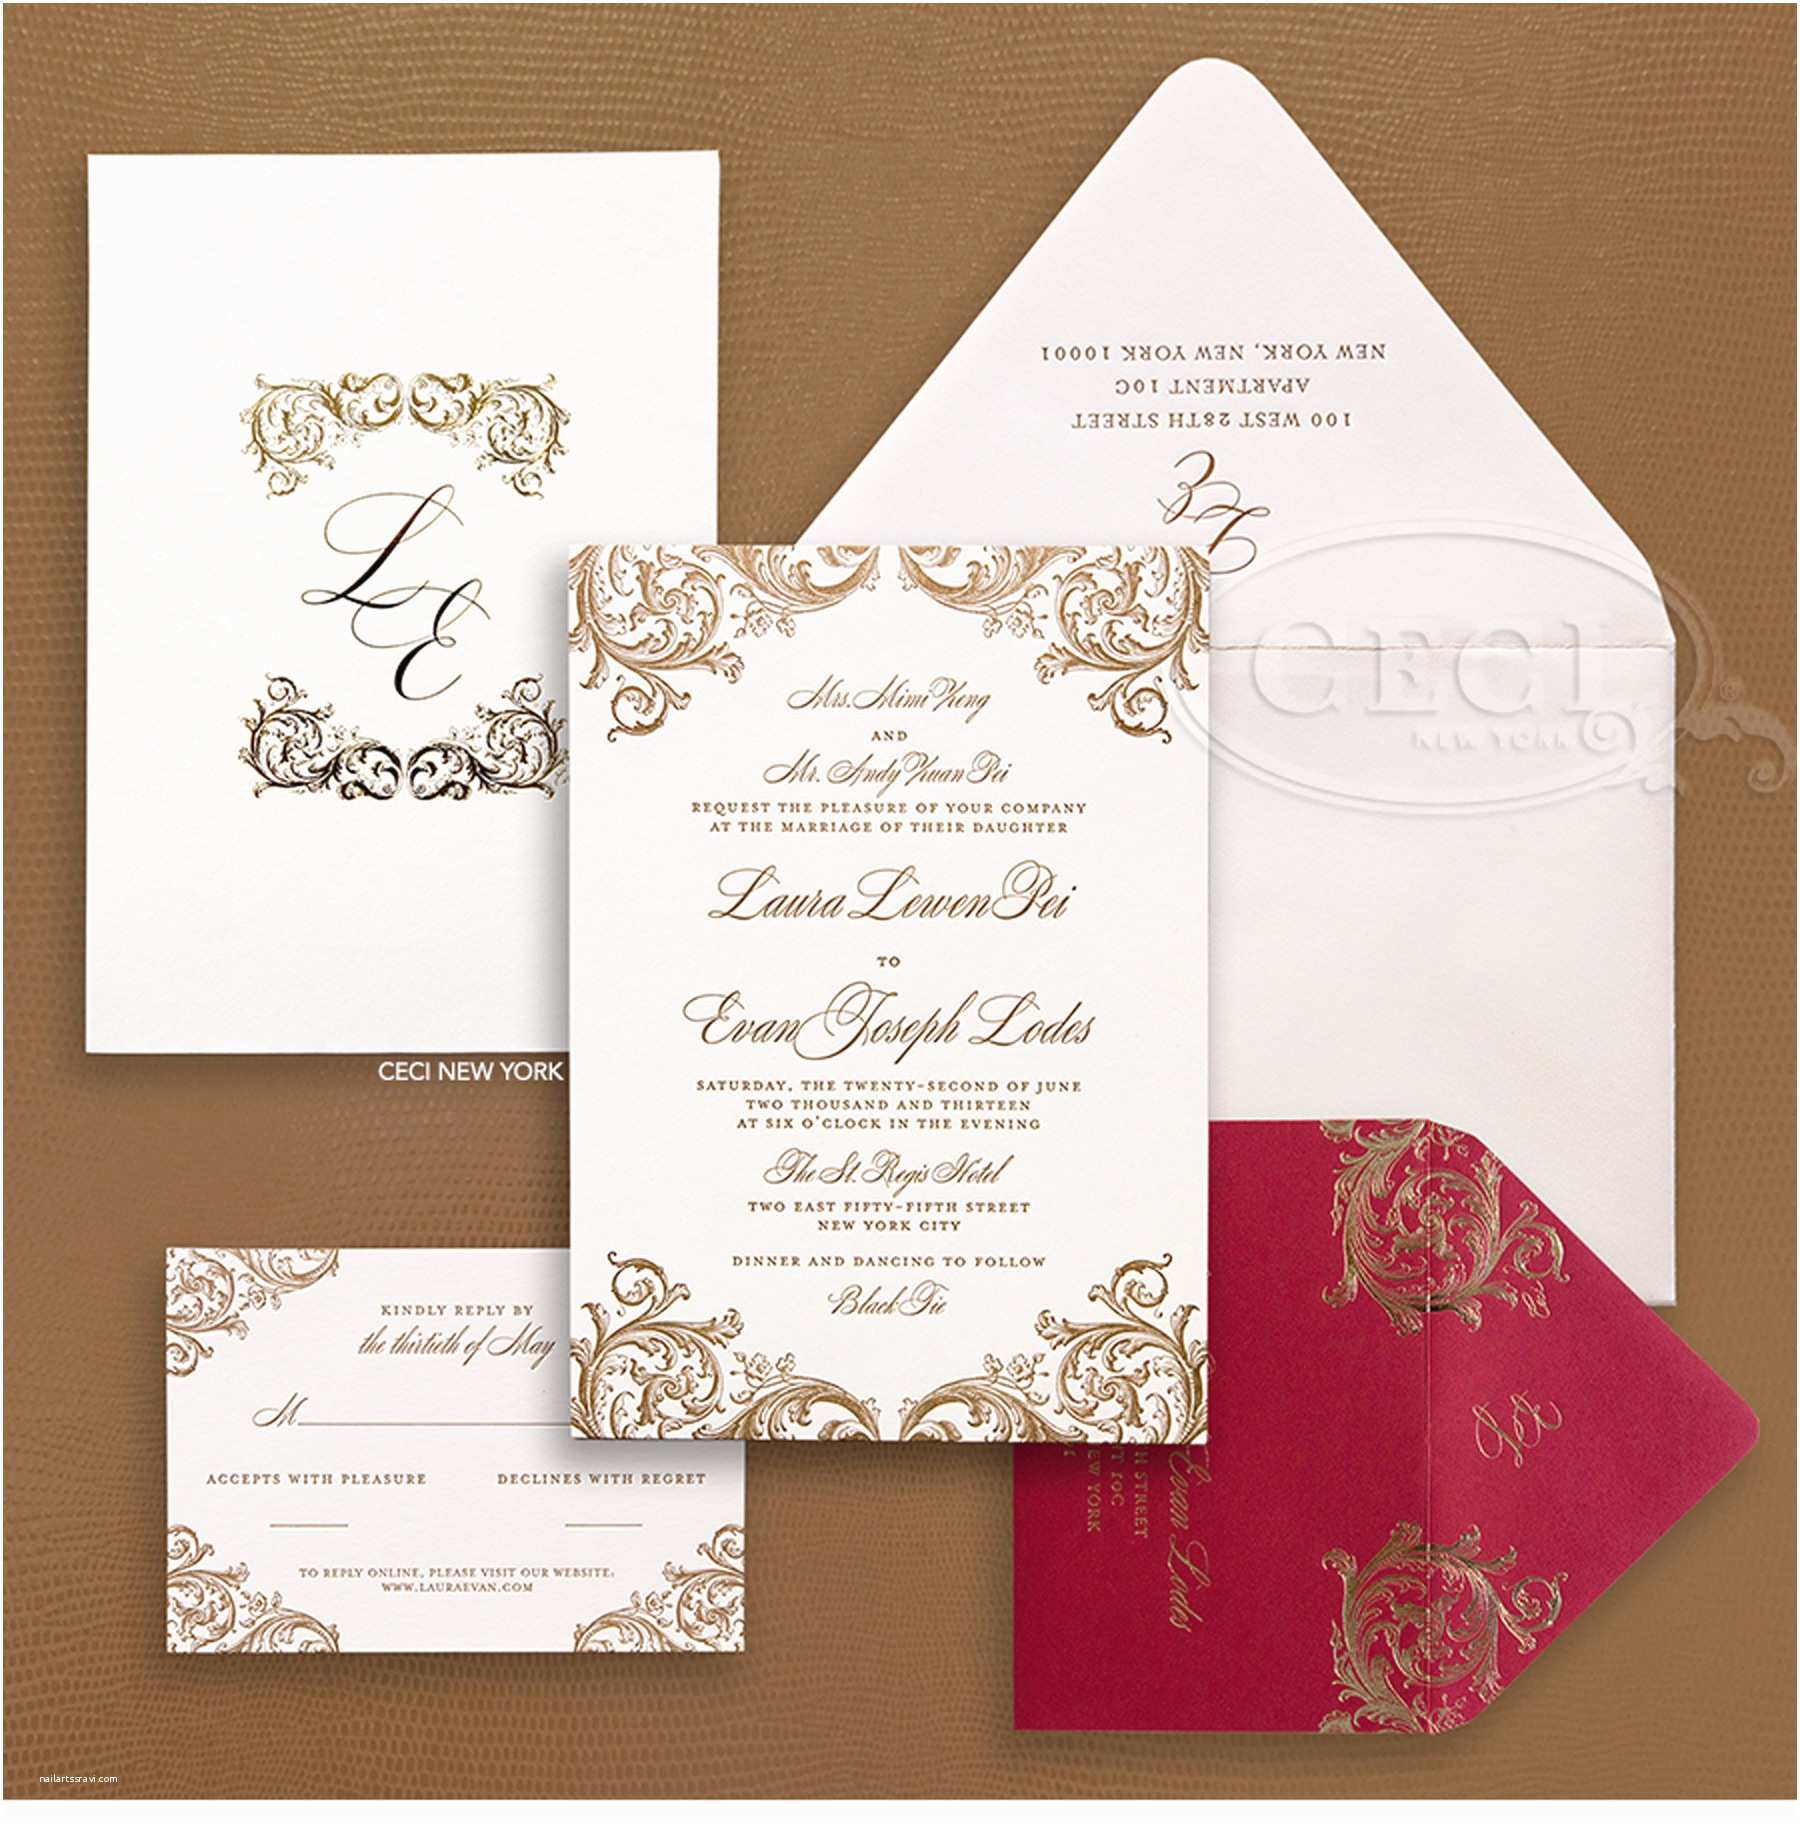 Best Place for Wedding Invitations 10 Breathtaking Red and Gold Wedding Invitations to